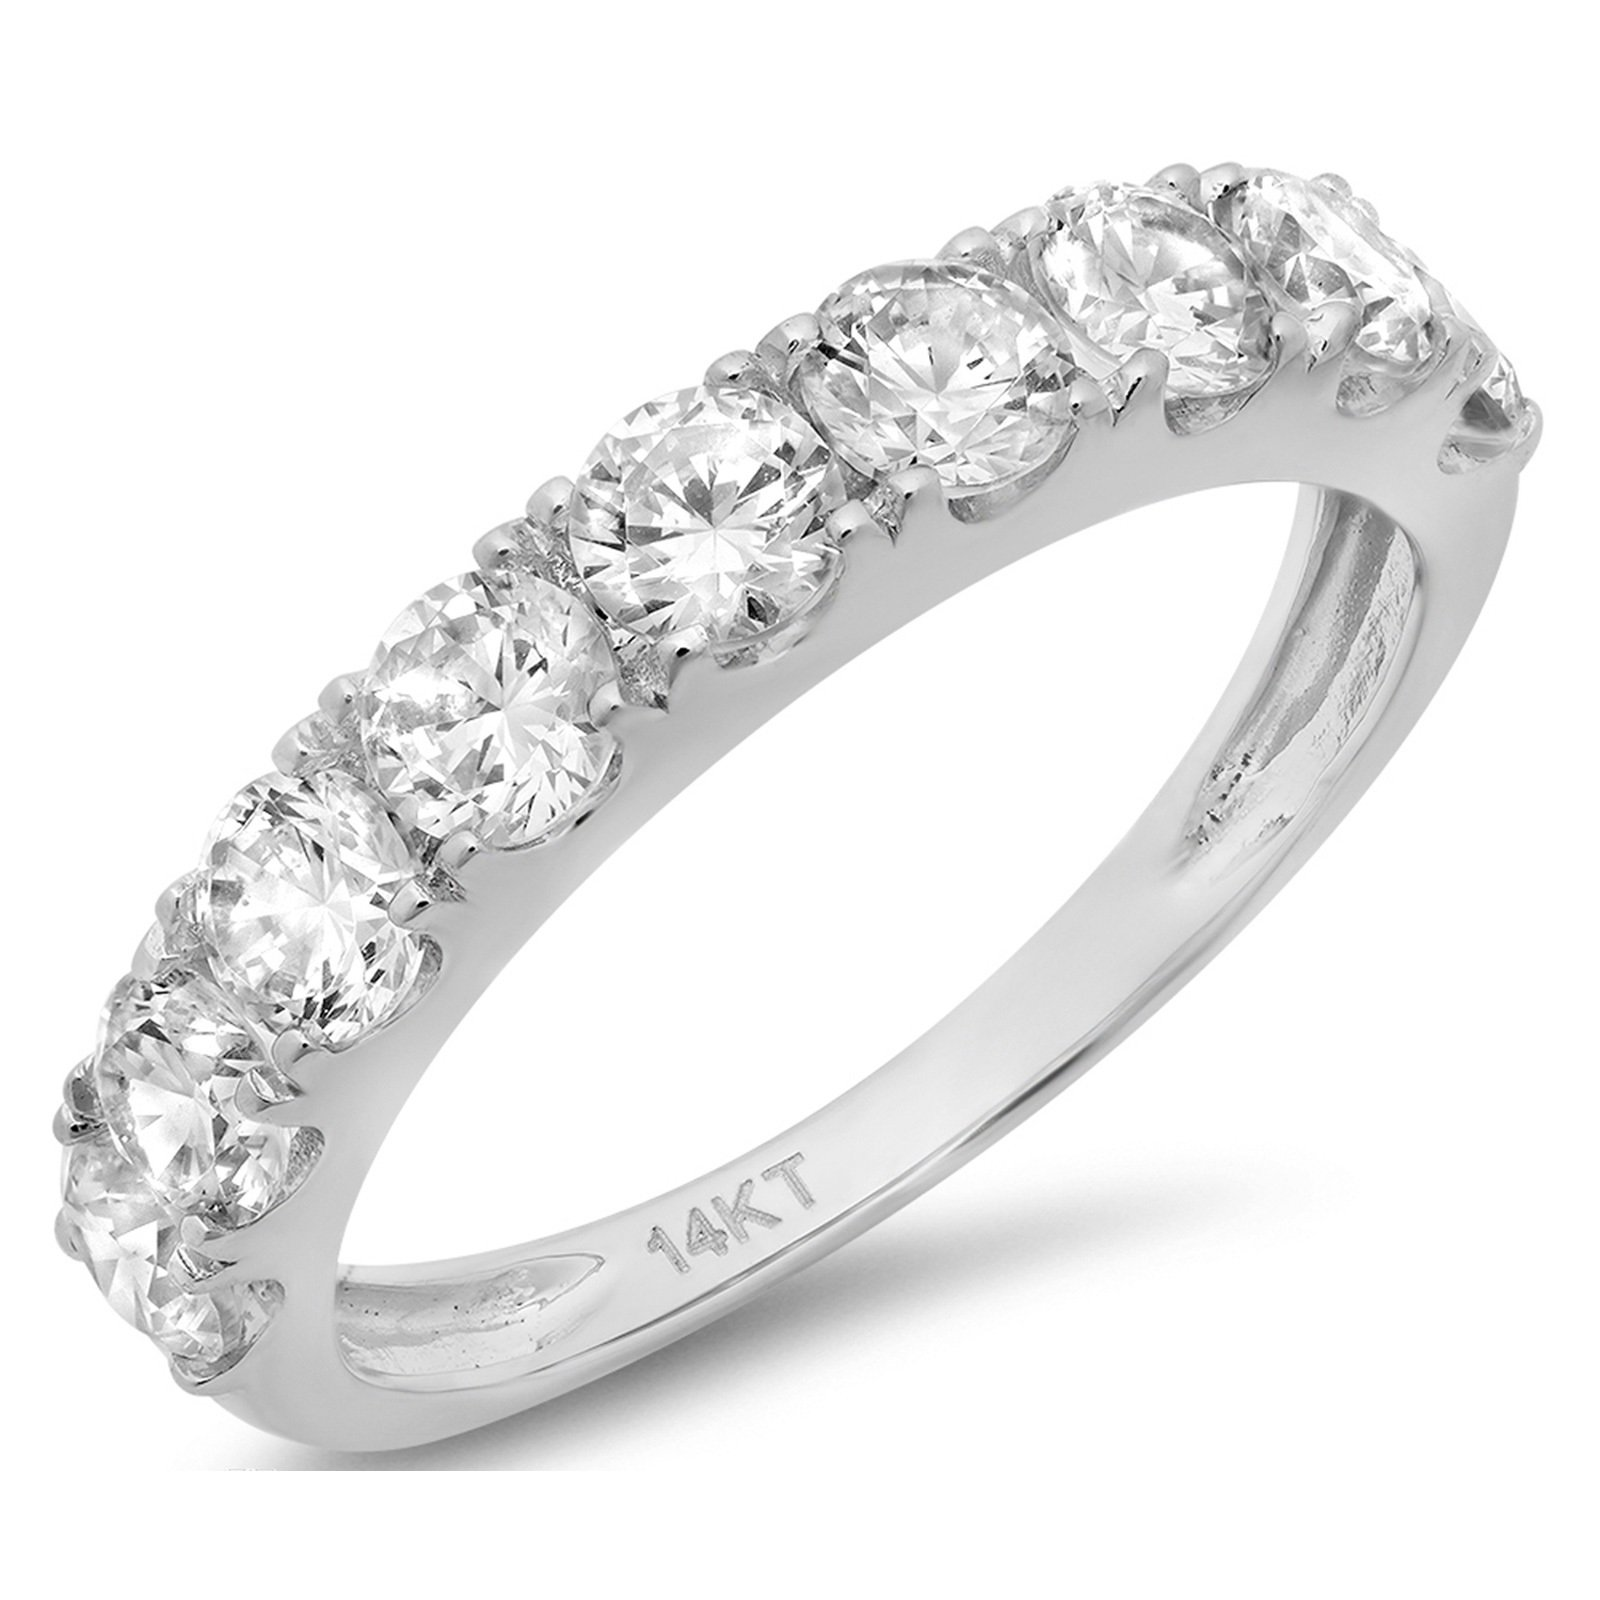 Clara Pucci 1.4 CT Round Cut pave set Bridal Wedding Engagement Band Ring 14kt White Gold, Size 9.5